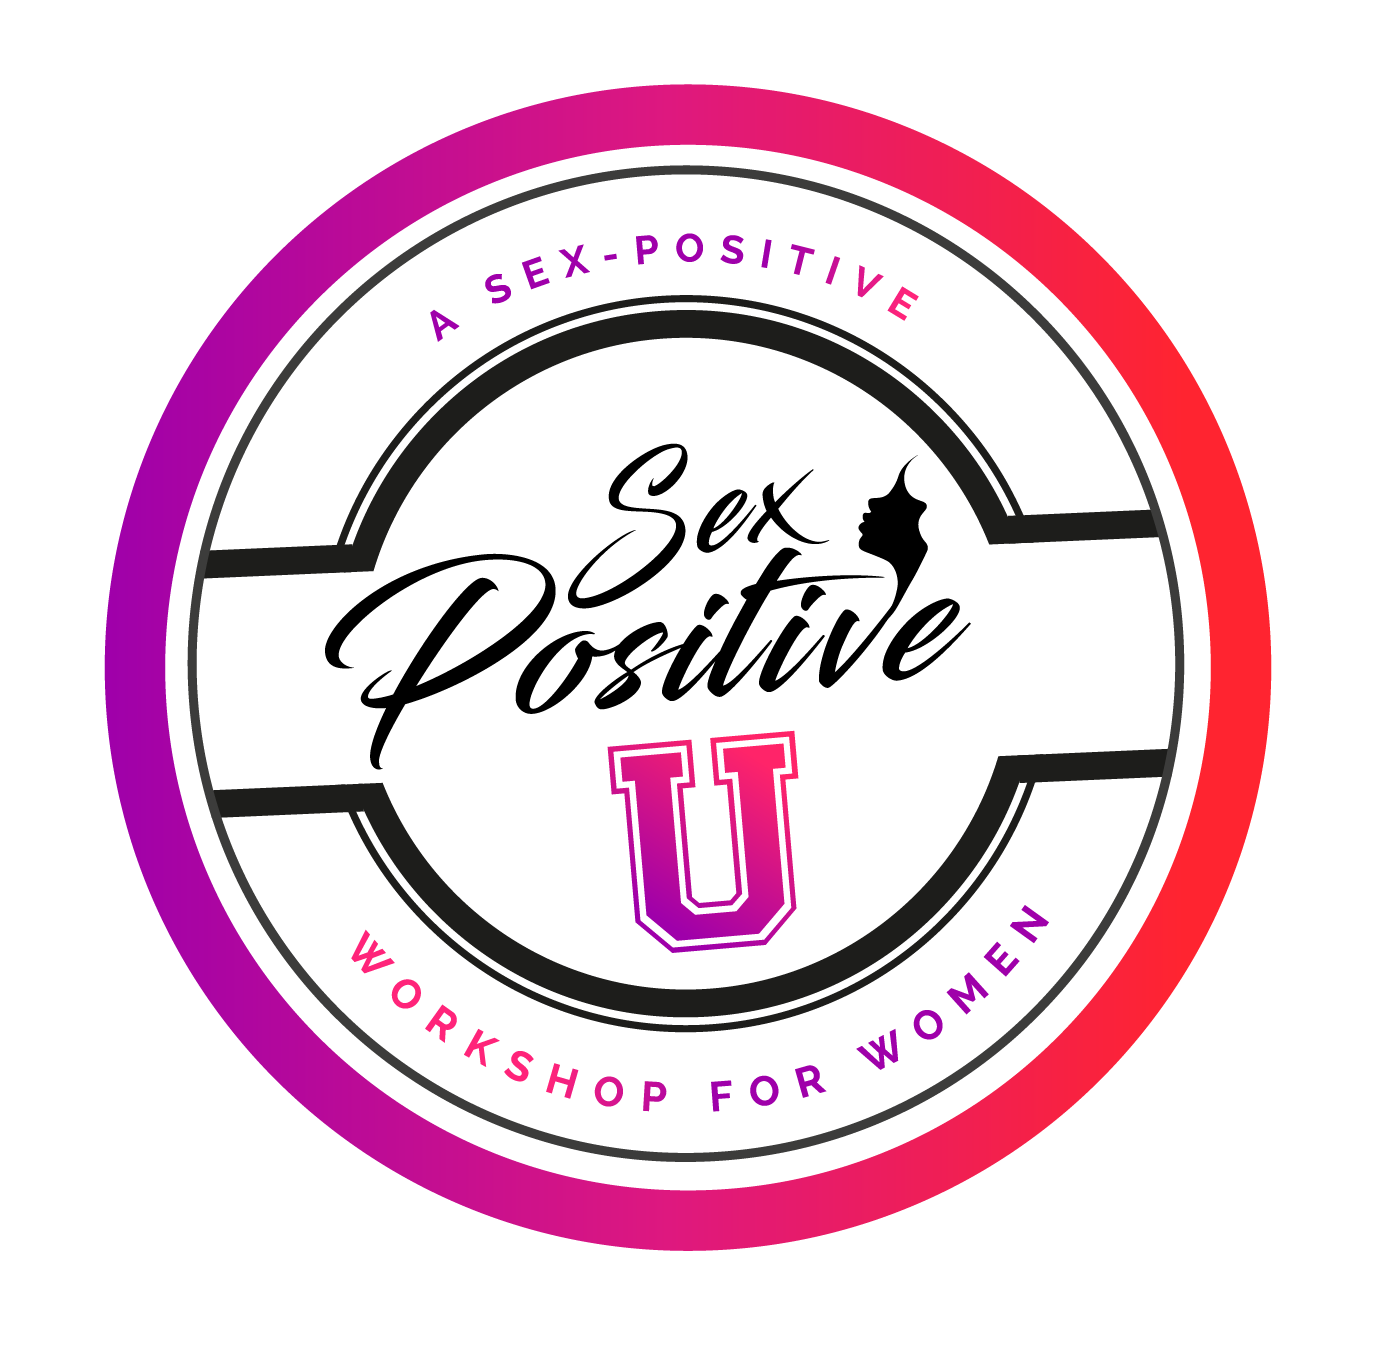 Sex Positive U logo